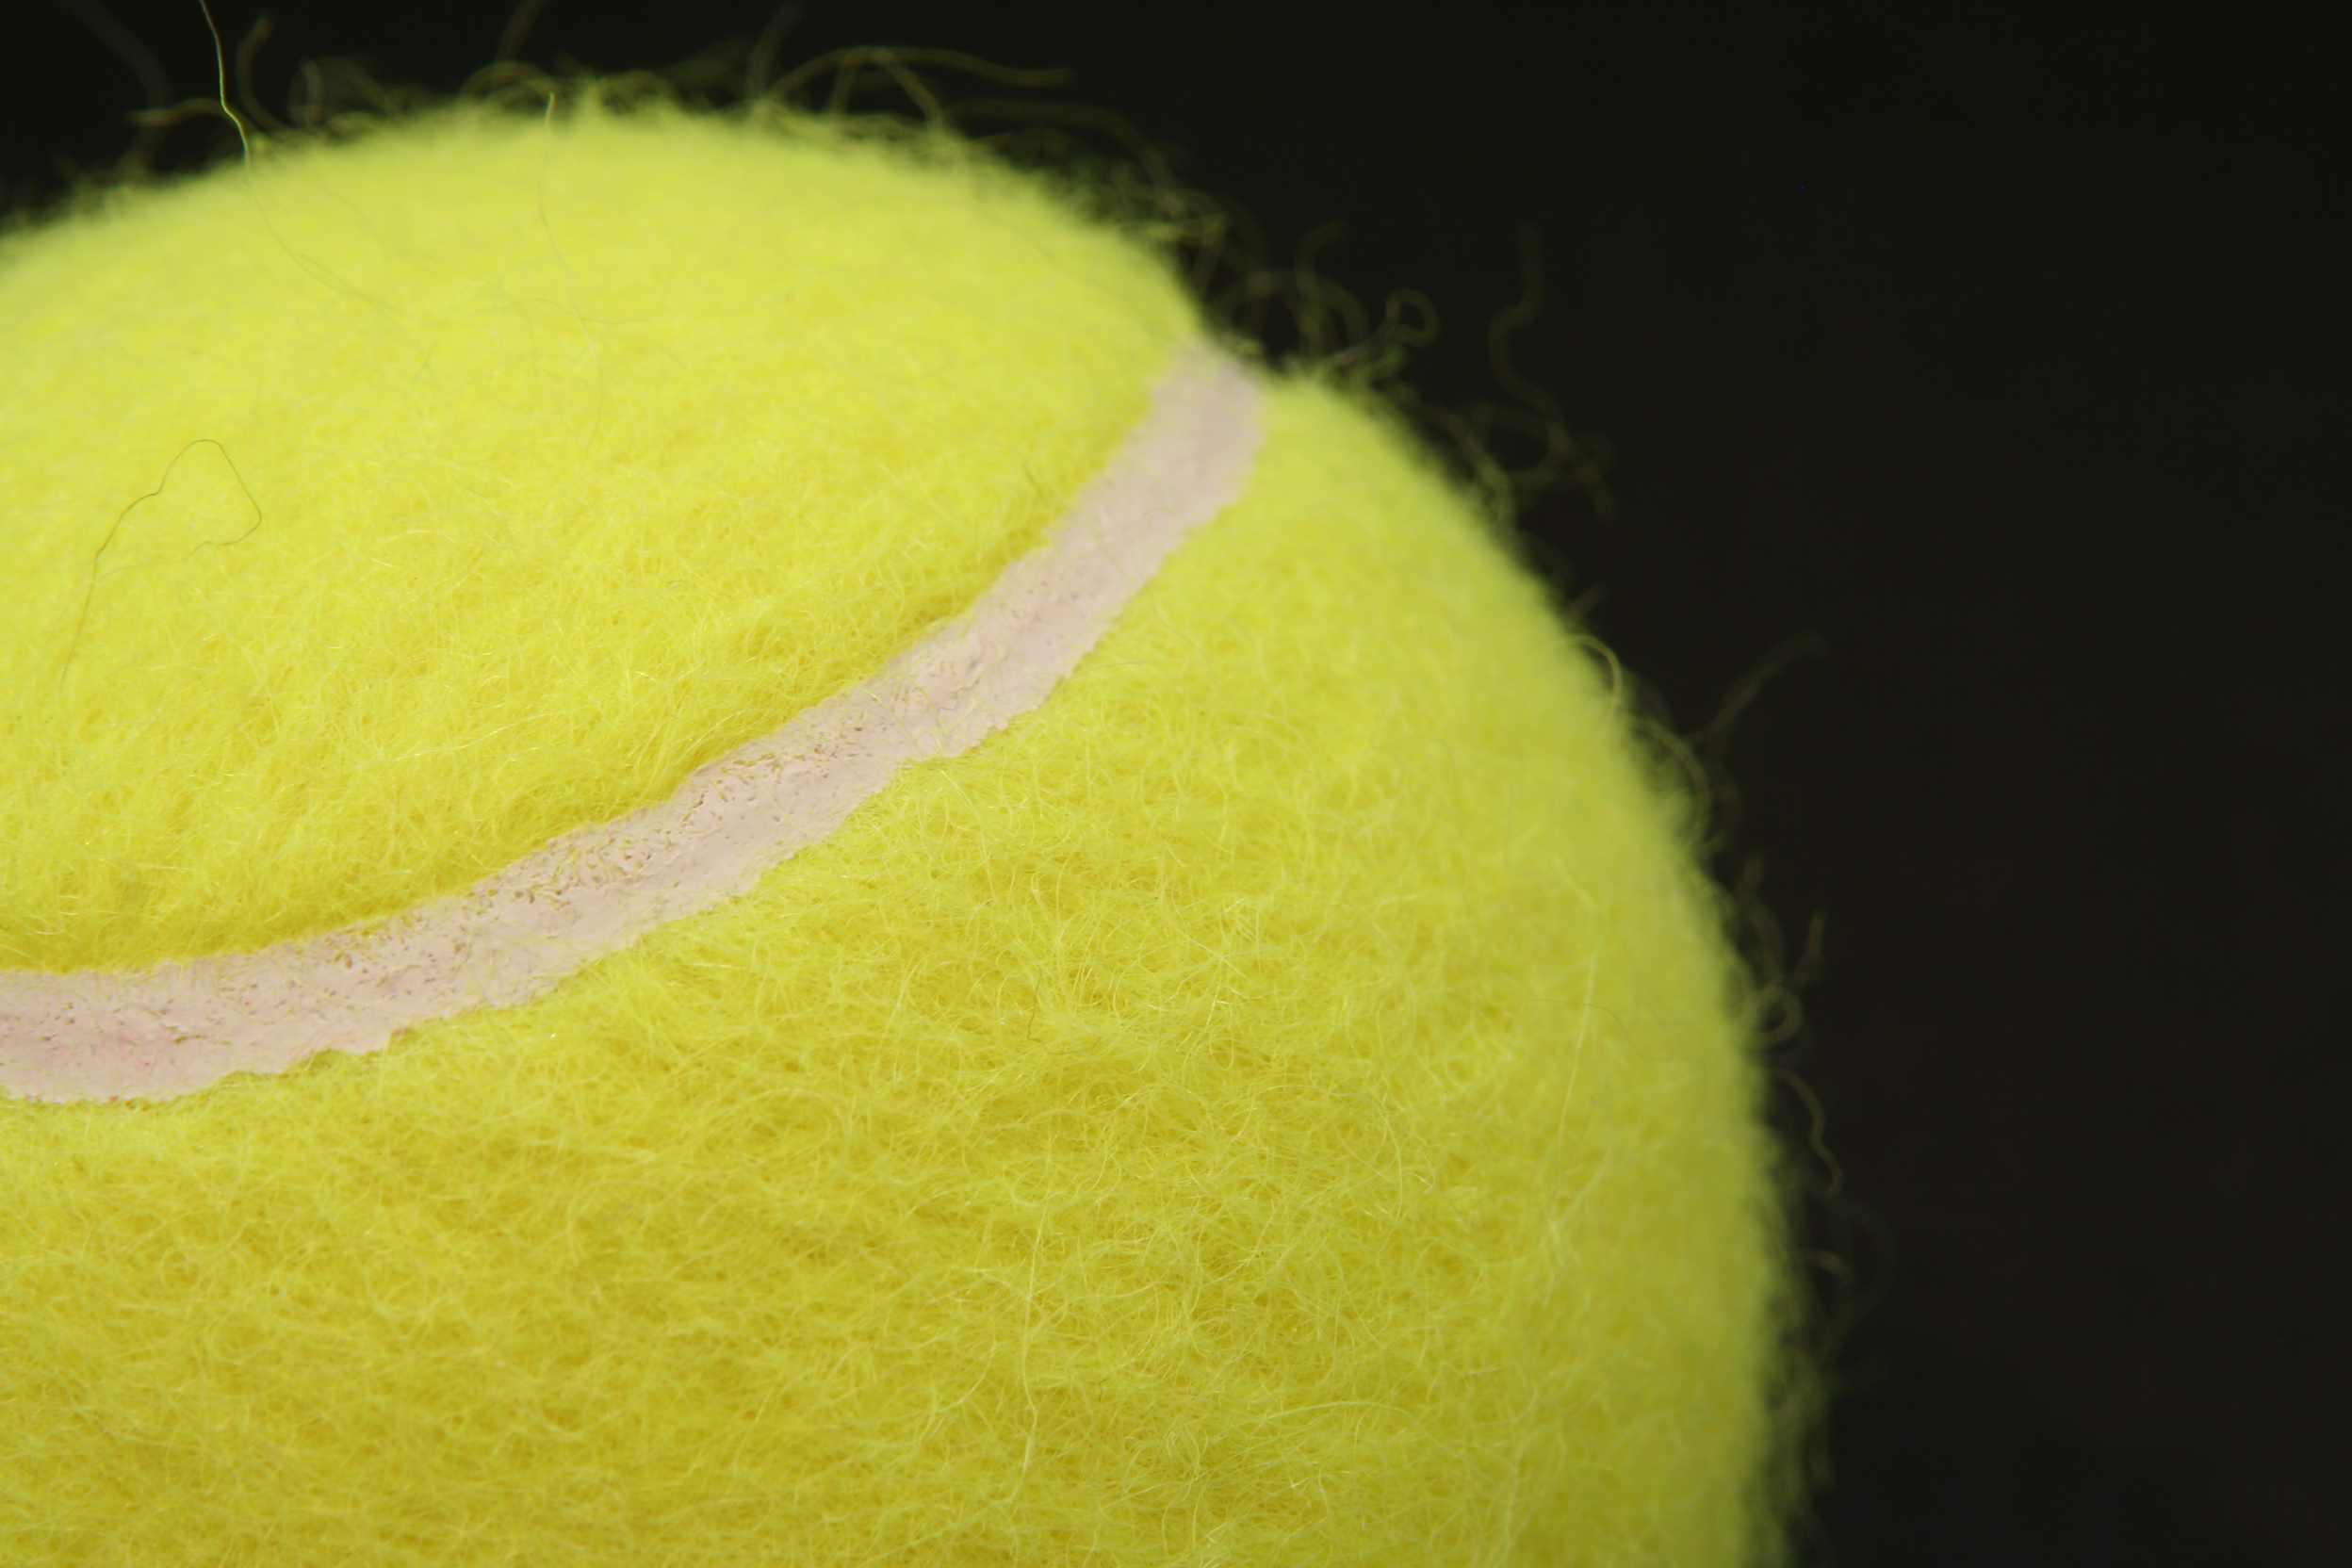 why does a tennis ball have fuzz